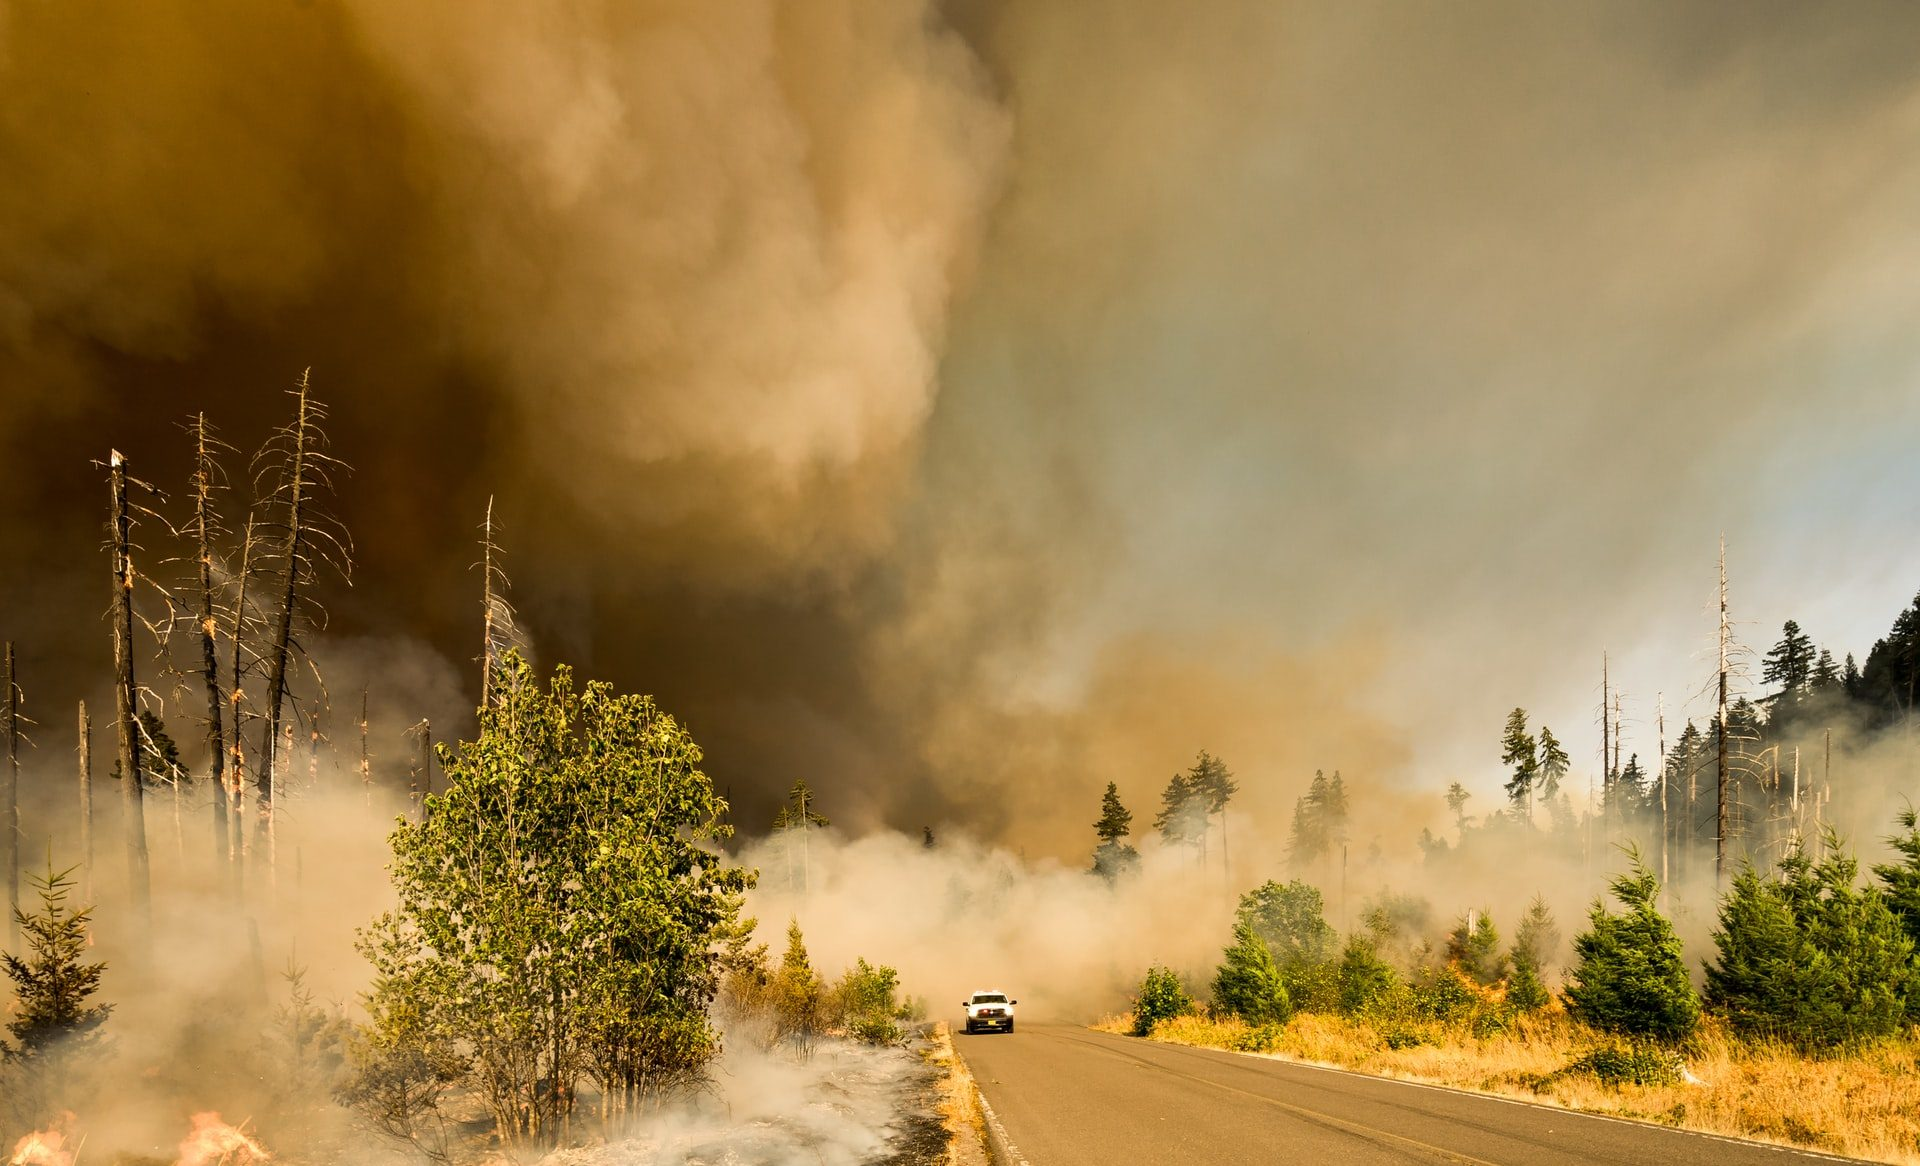 Could wildfire smoke spread infectious diseases?